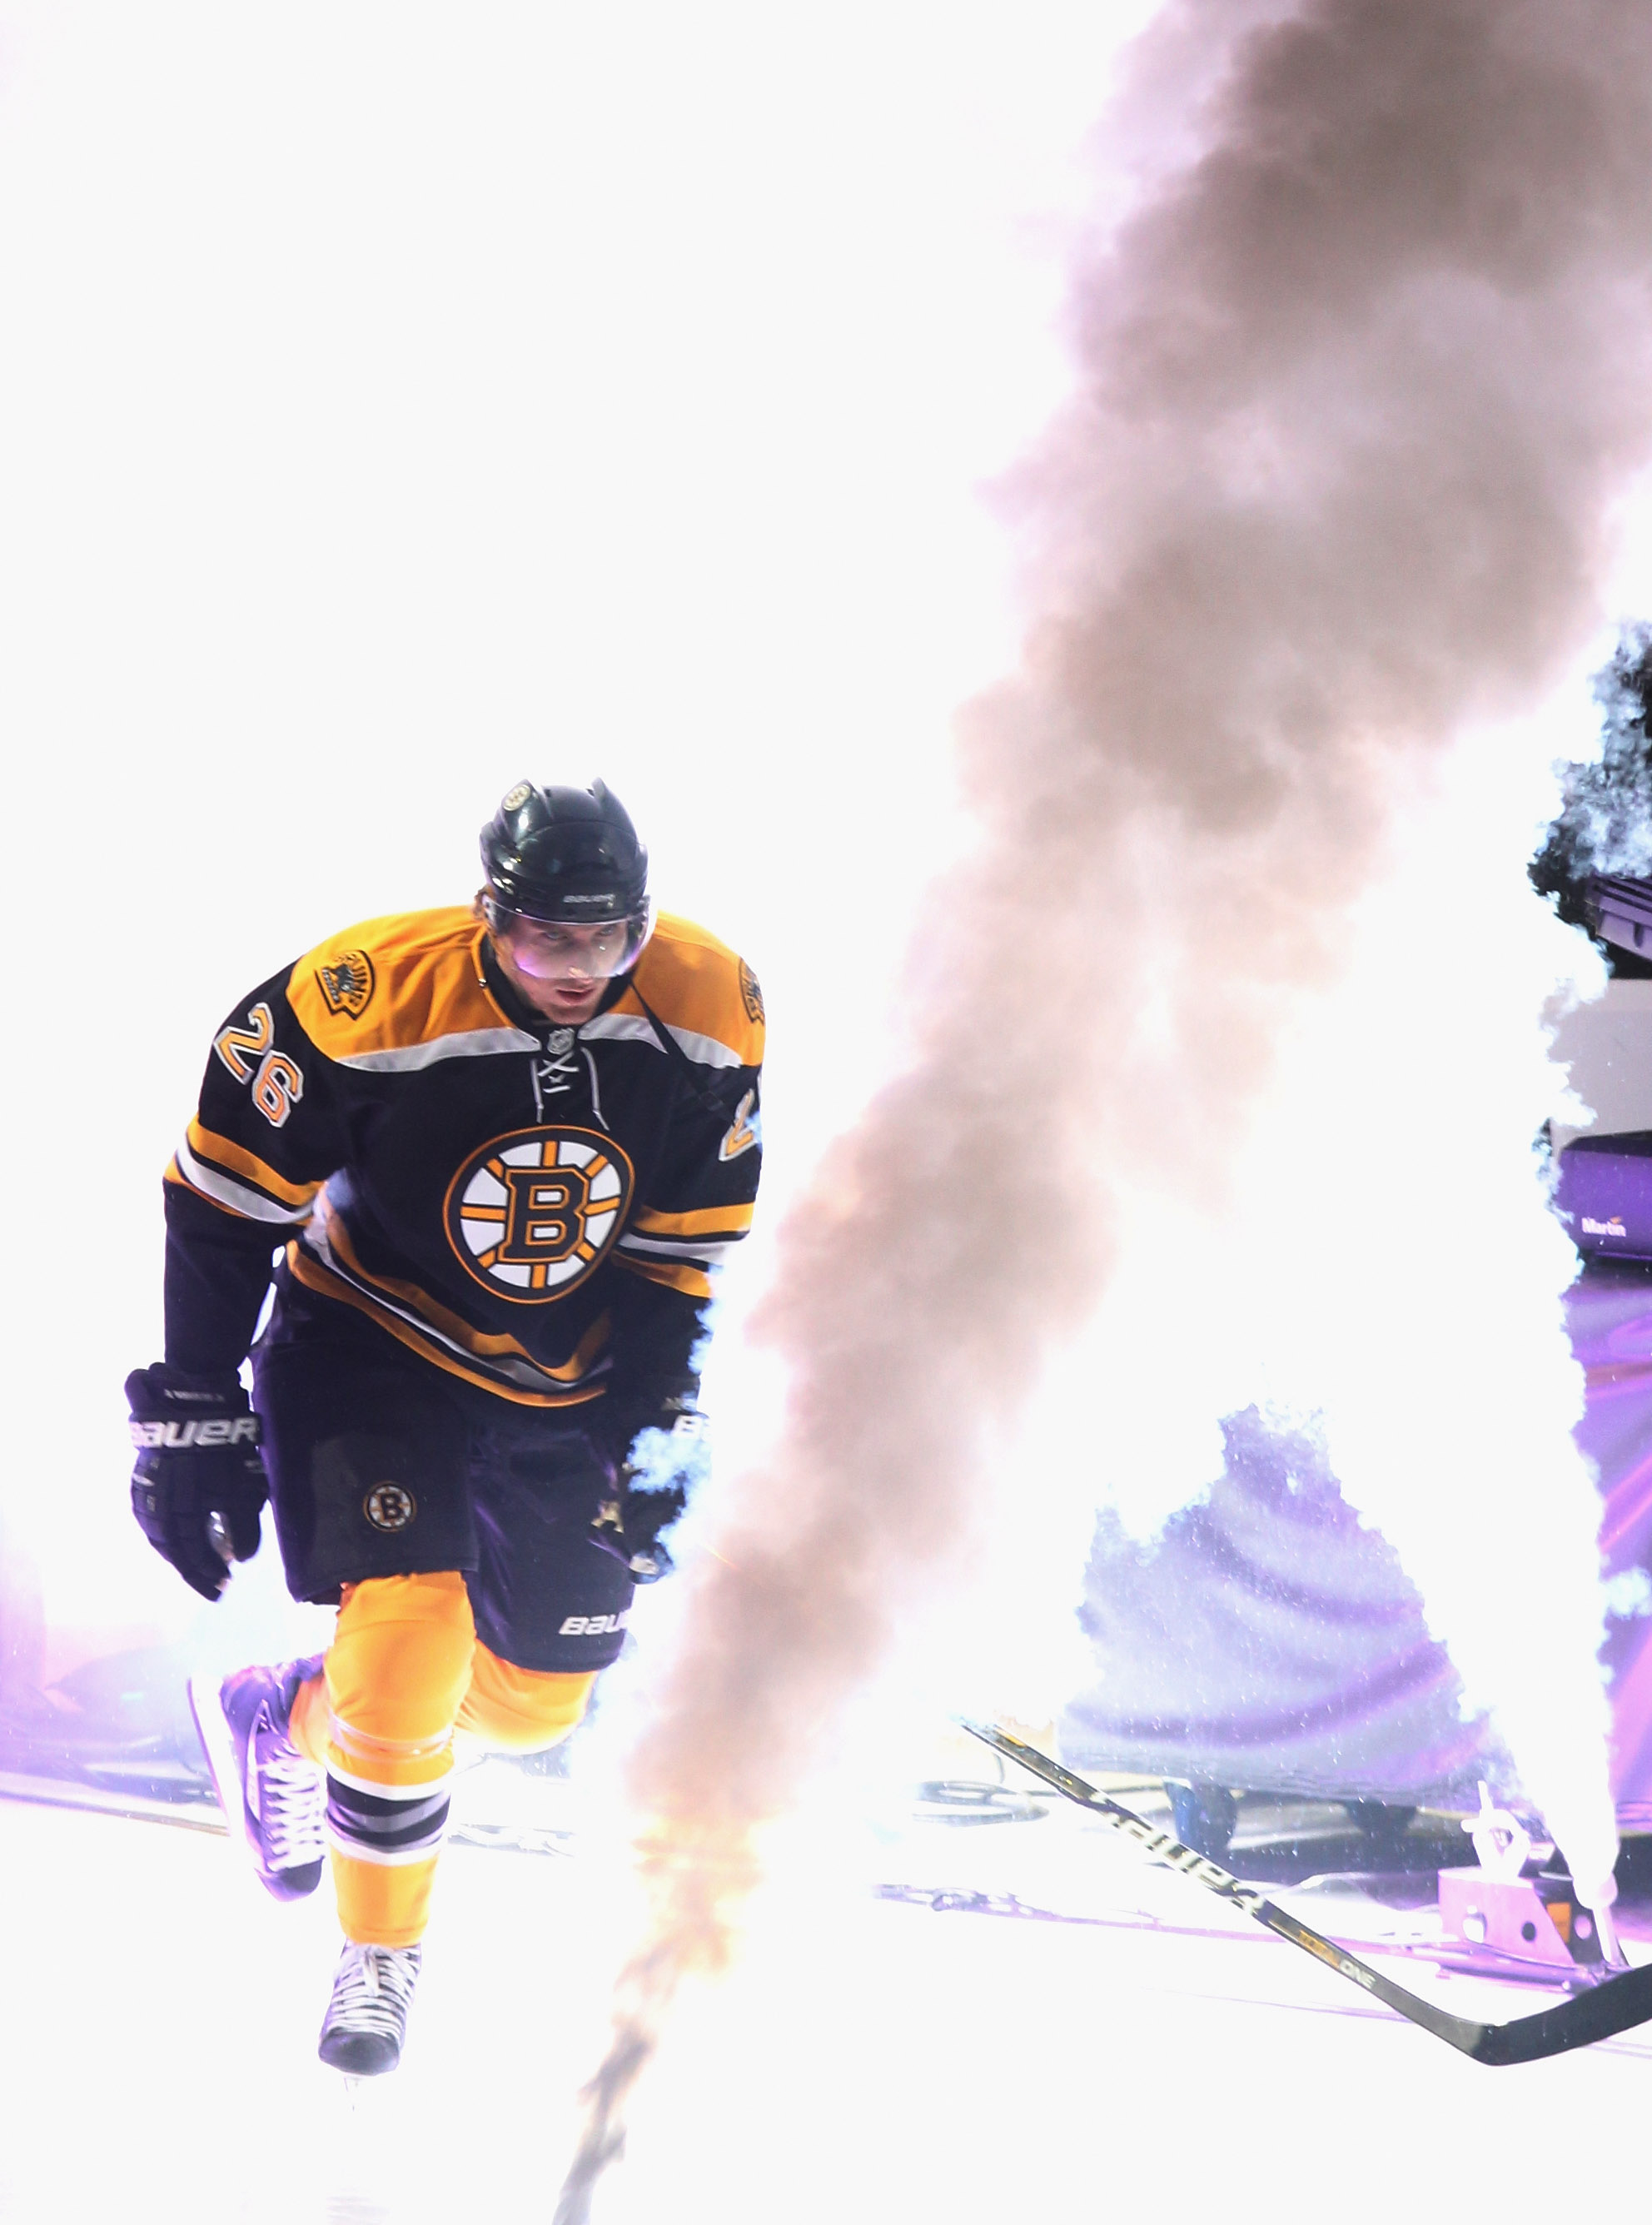 BOSTON - OCTOBER 21: Blake Wheeler #26 of the Boston Bruins skates out to play against the  Washington Capitals at the TD Garden on October 21, 2010 in Boston, Massachusetts.  (Photo by Bruce Bennett/Getty Images)